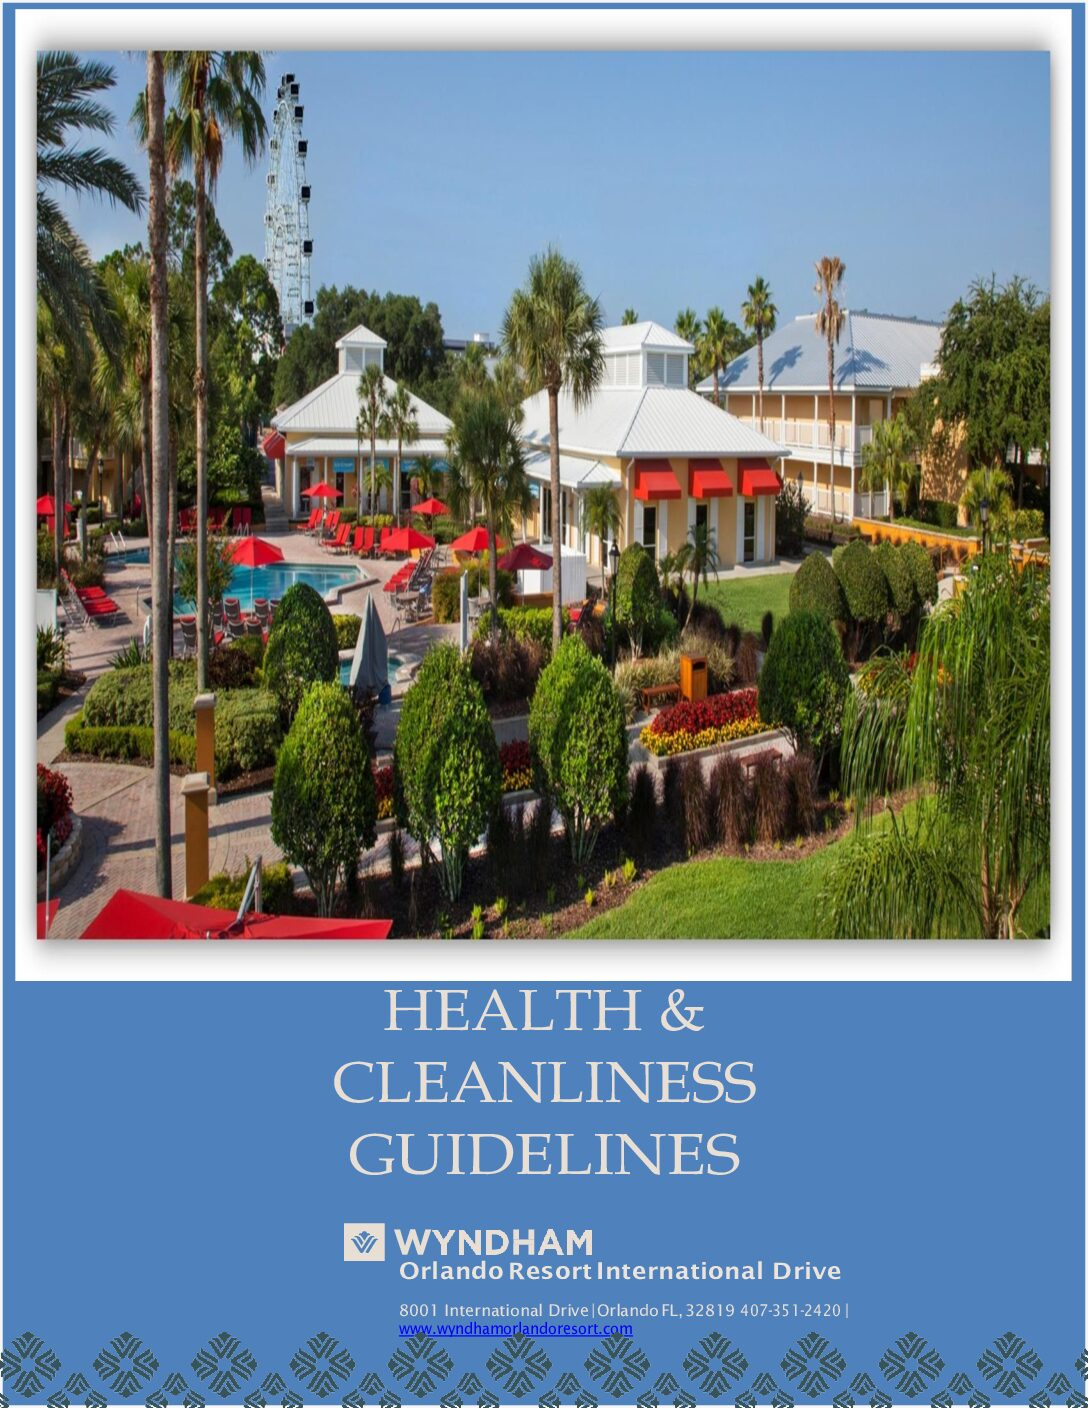 Wyndham Orlando Health and Cleanliness Guidelines 6.3.20